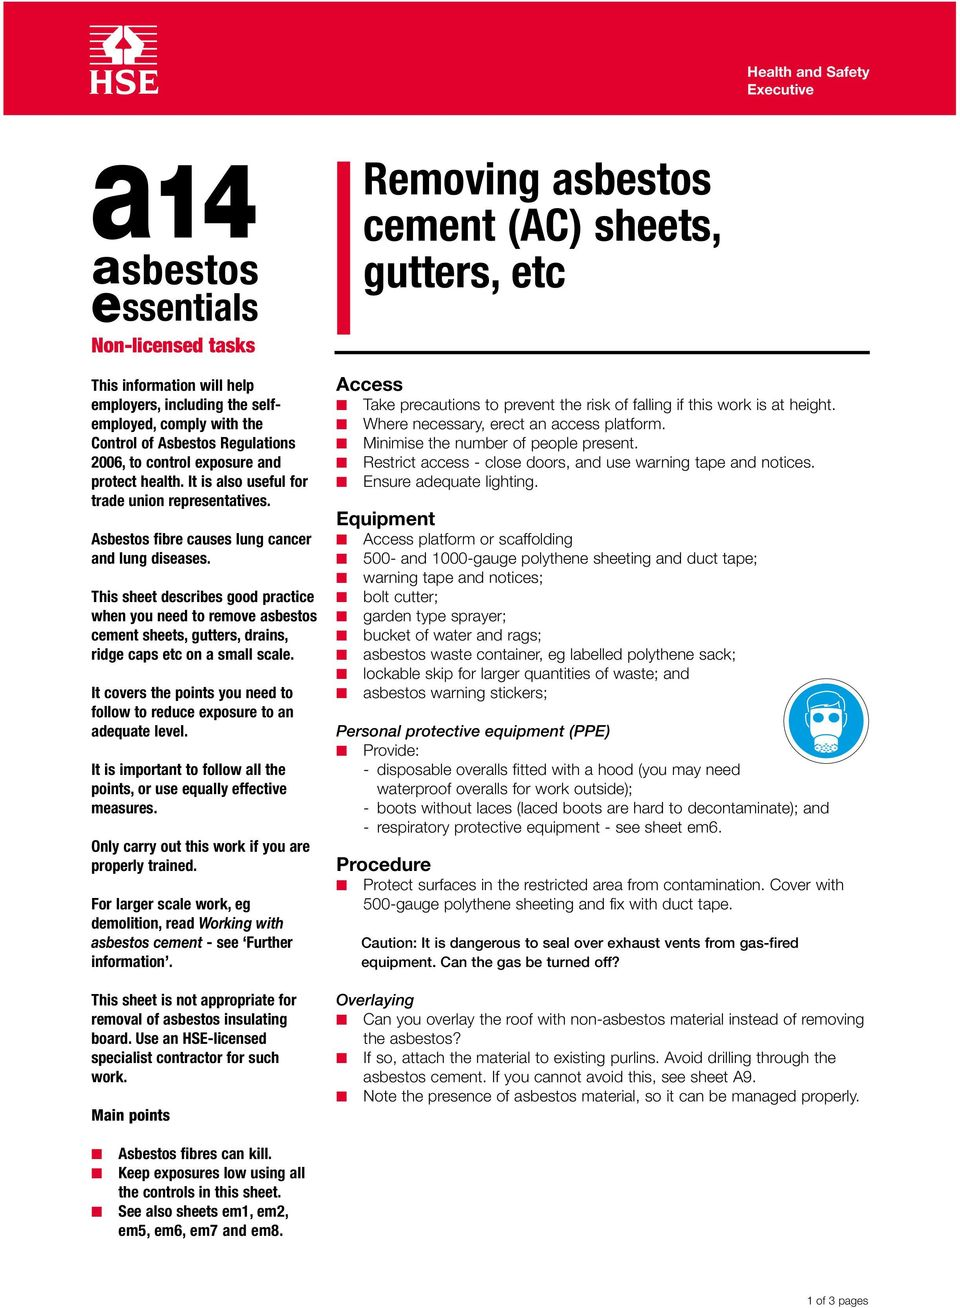 This sheet describes good practice when you need to remove asbestos cement sheets, gutters, drains, ridge caps etc on a small scale.